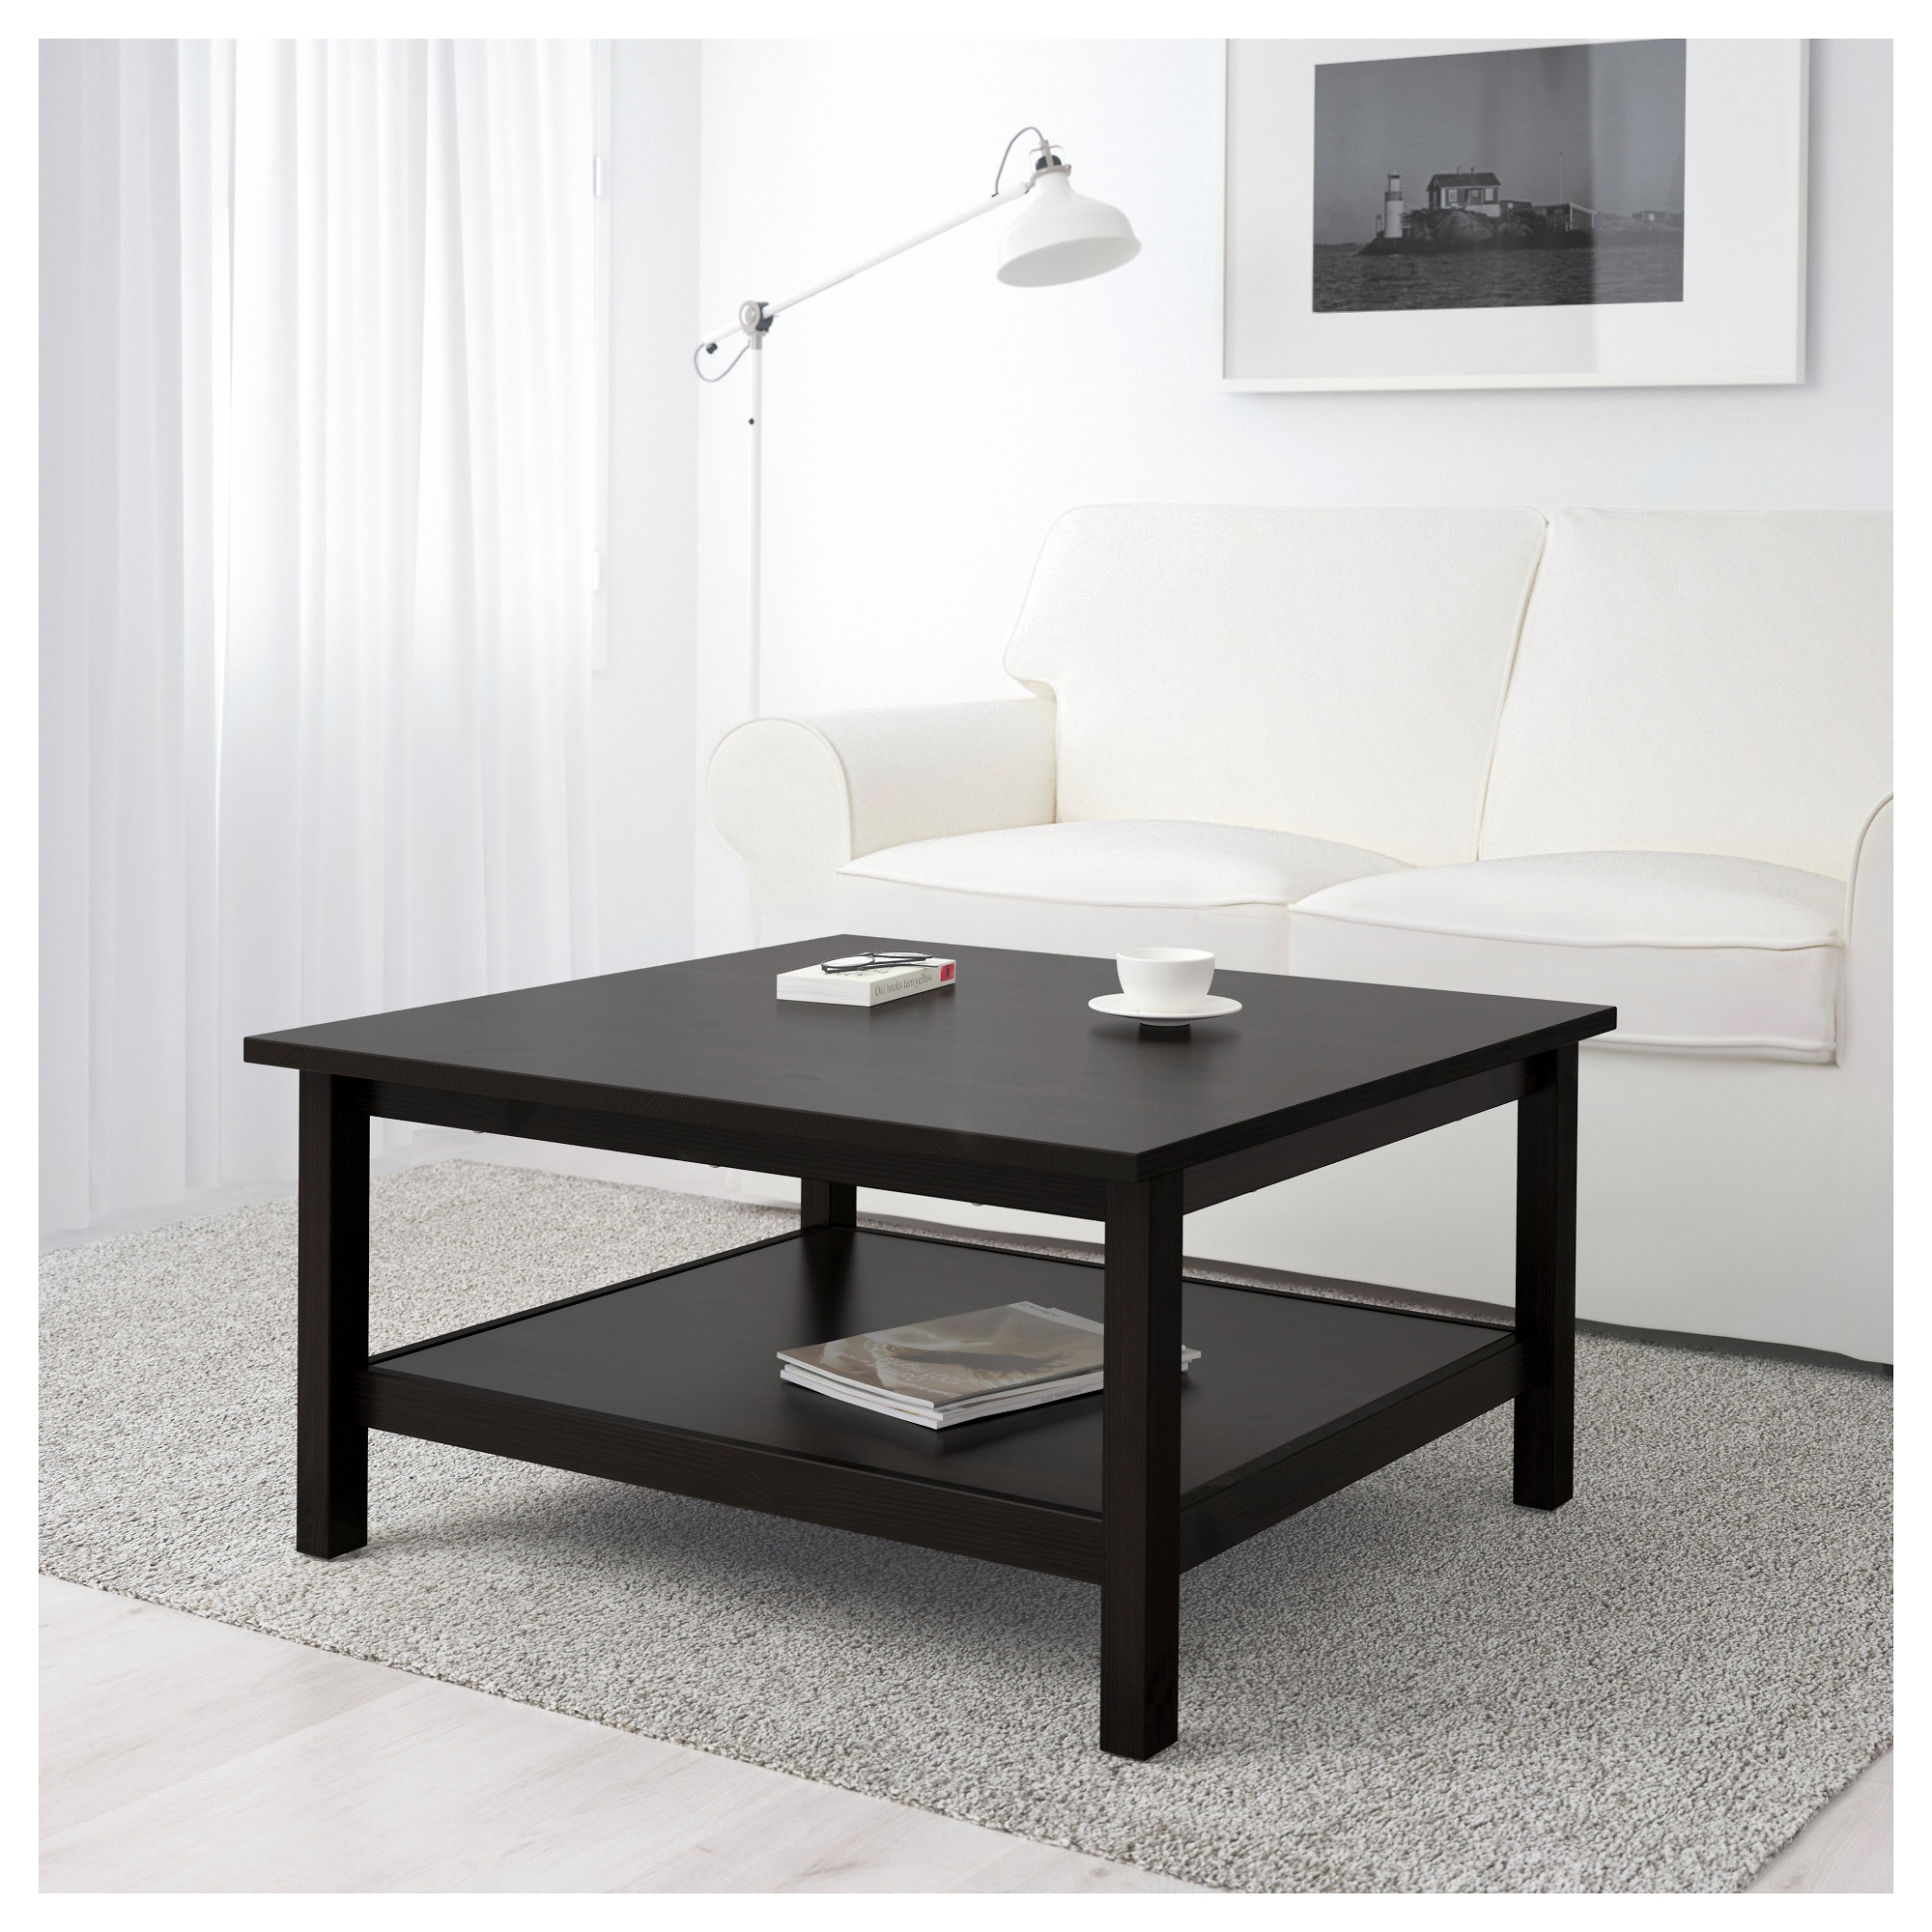 HEMNES Coffee table black brown IKEA